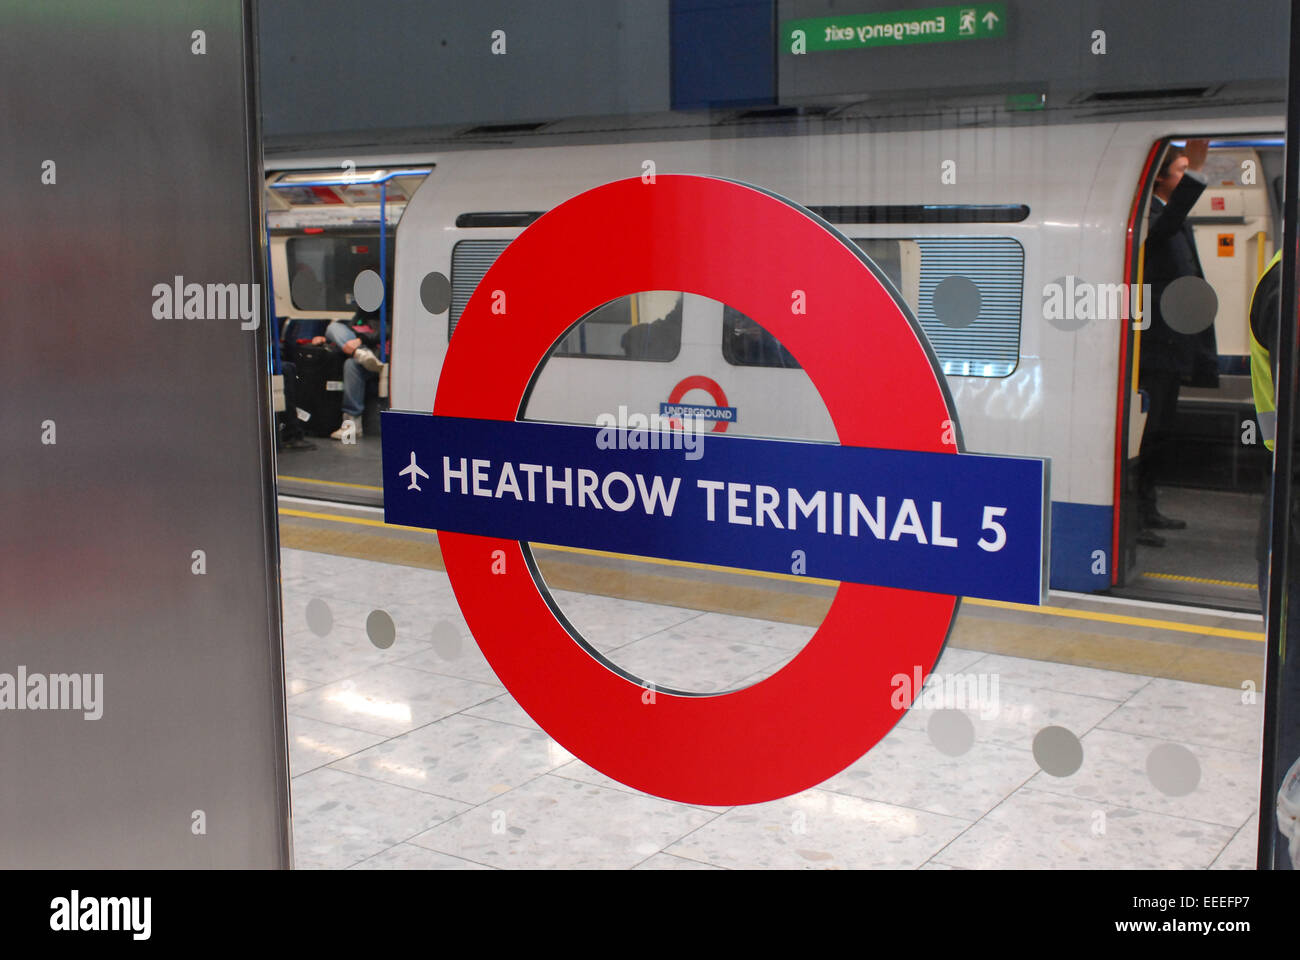 Station roundel at Heathrow Terminal 5 Underground station - Stock Image